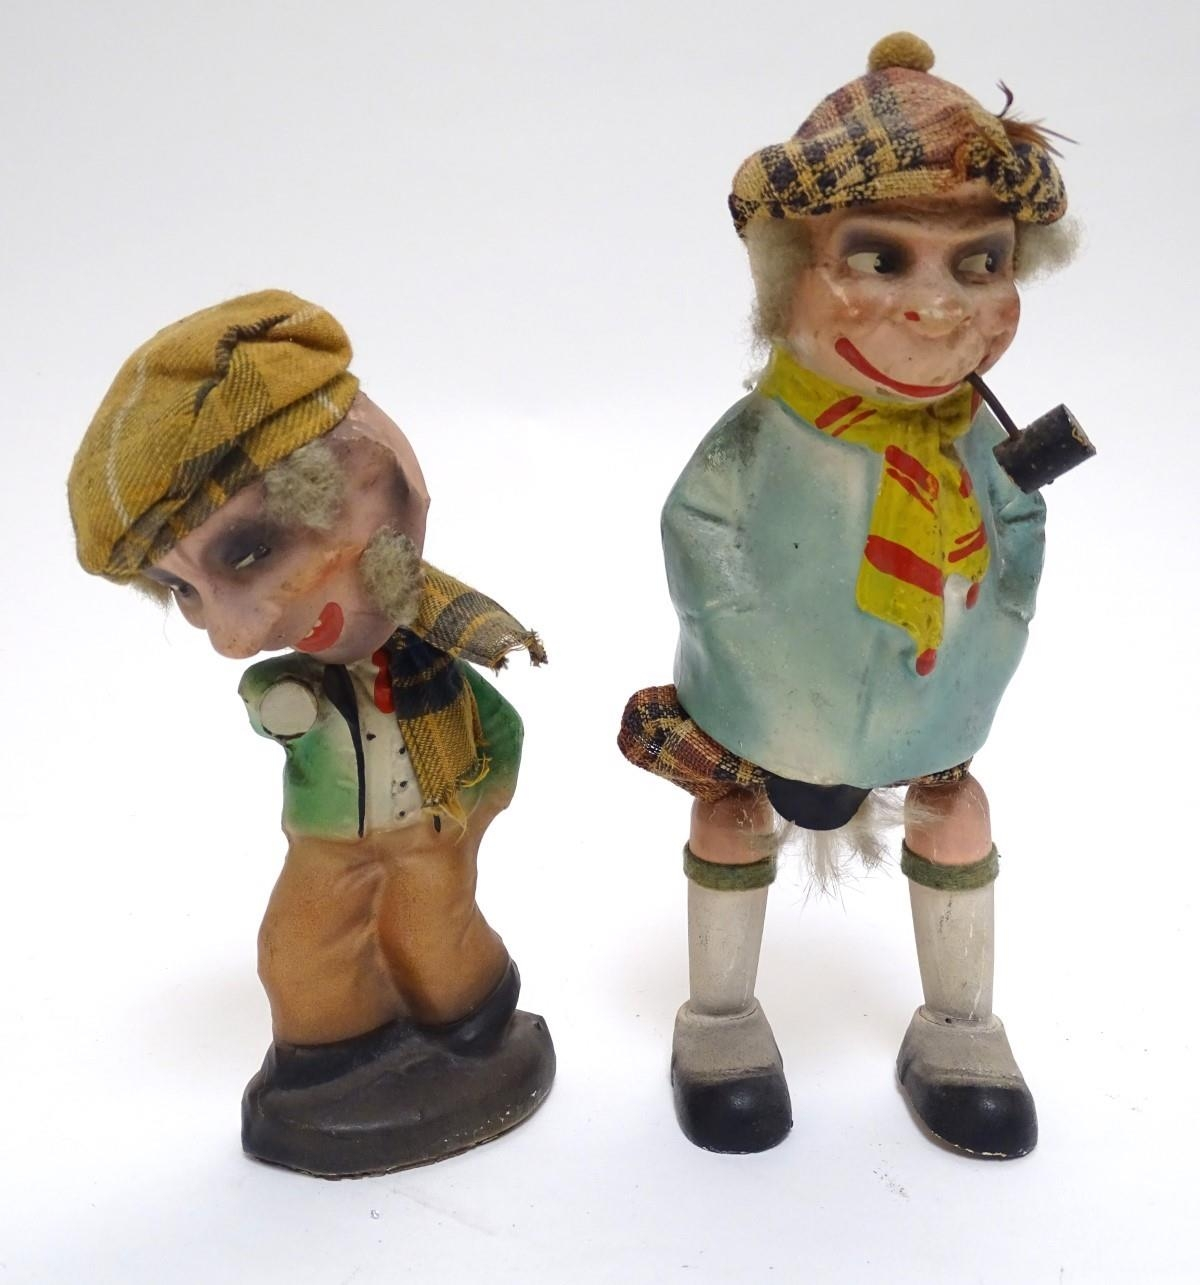 Toys: Two unusual novelty humorous Scottish figures made of pressed card. A wind up toy modelled